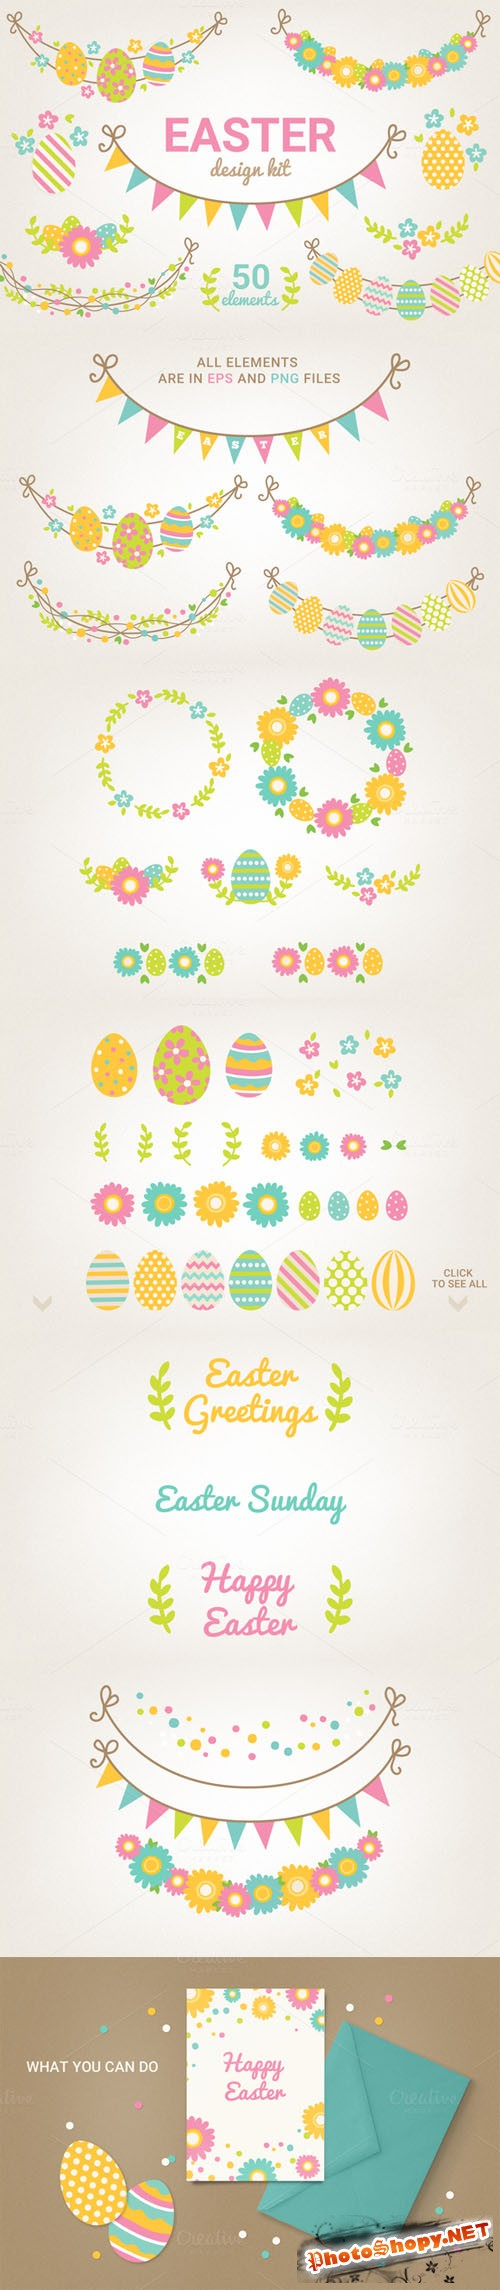 SALE - Easter Design Kit - Creativemarket 224710